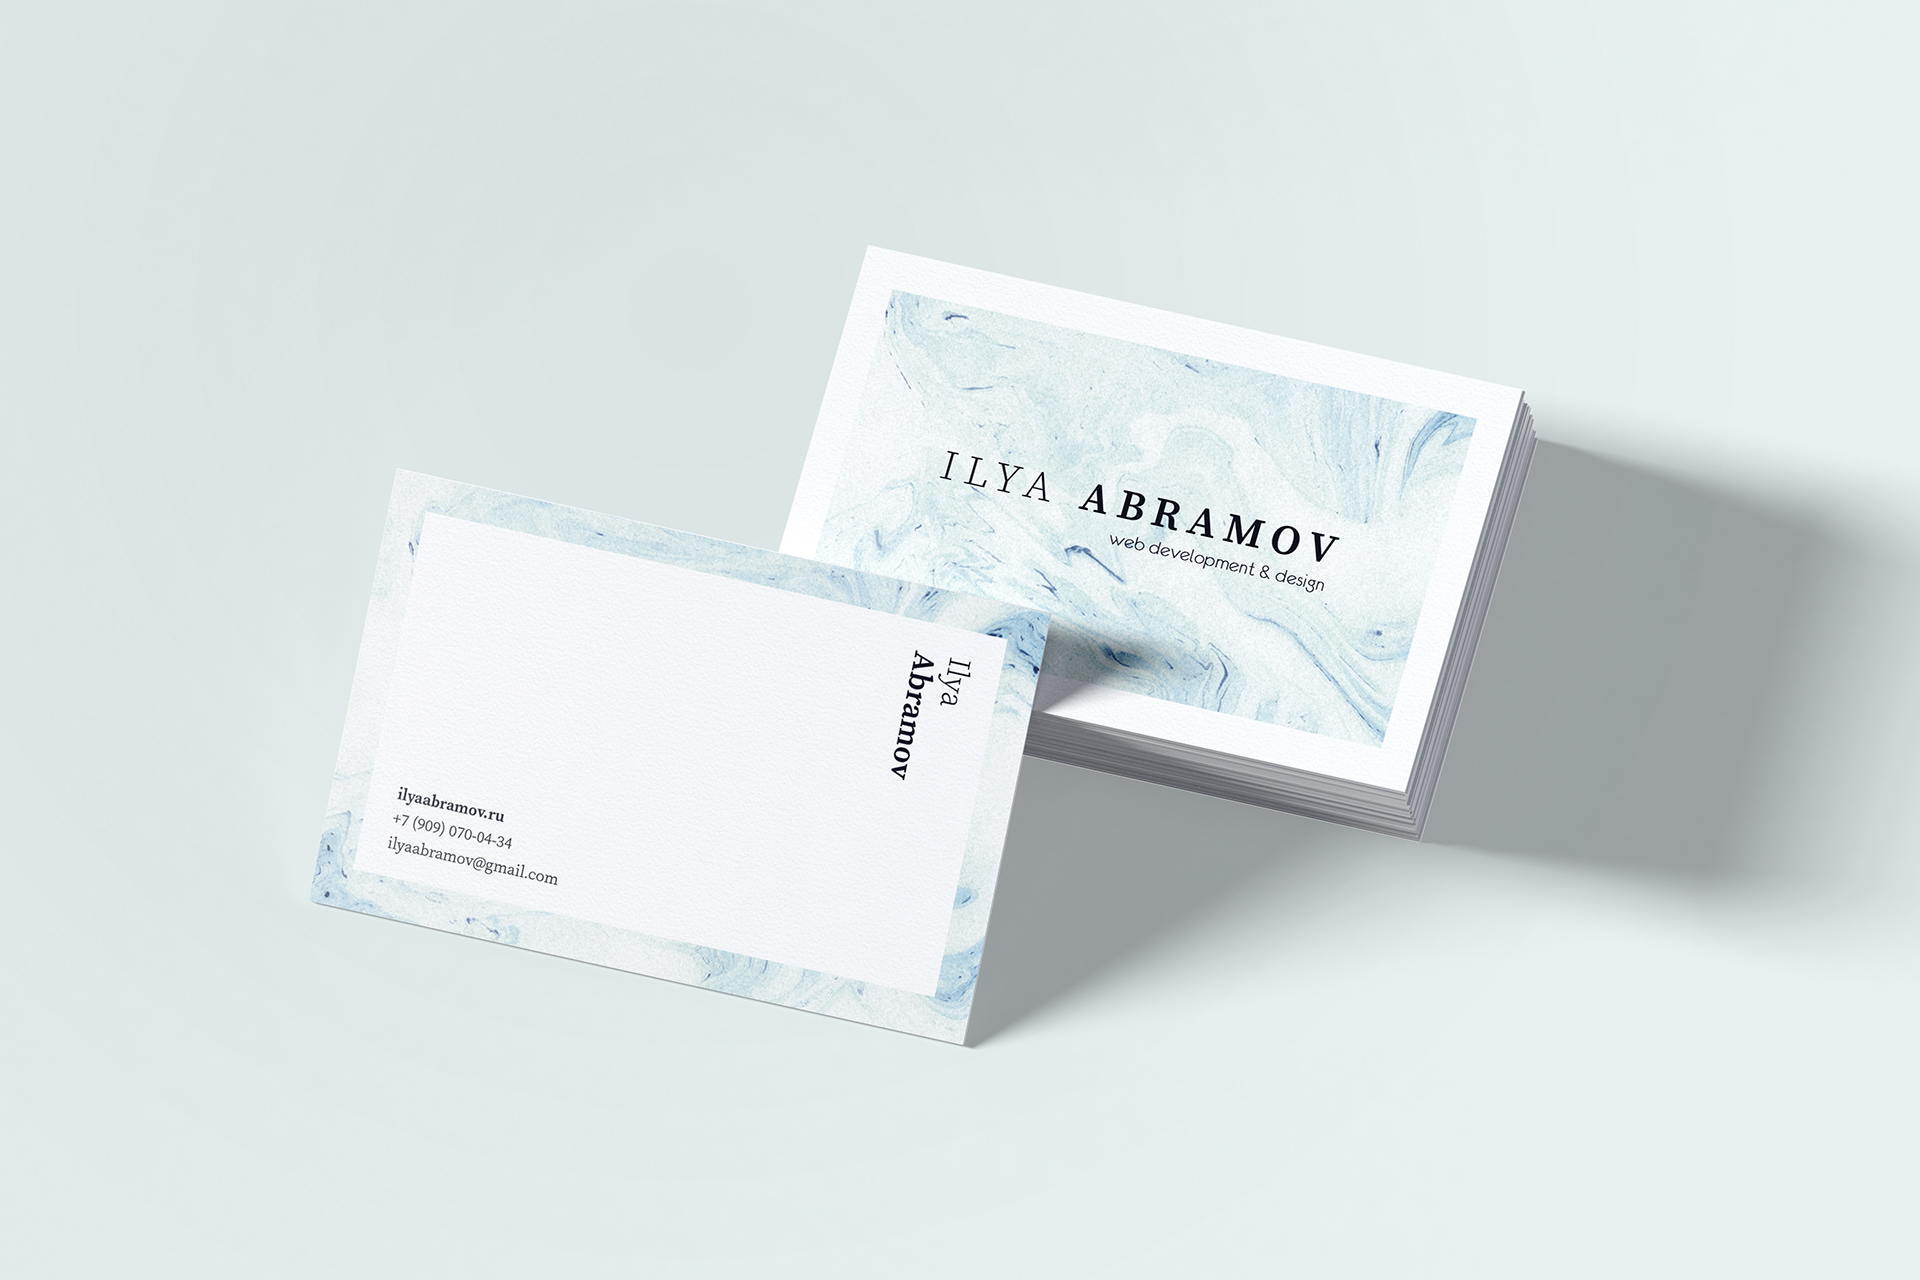 Ilya Abramov business card